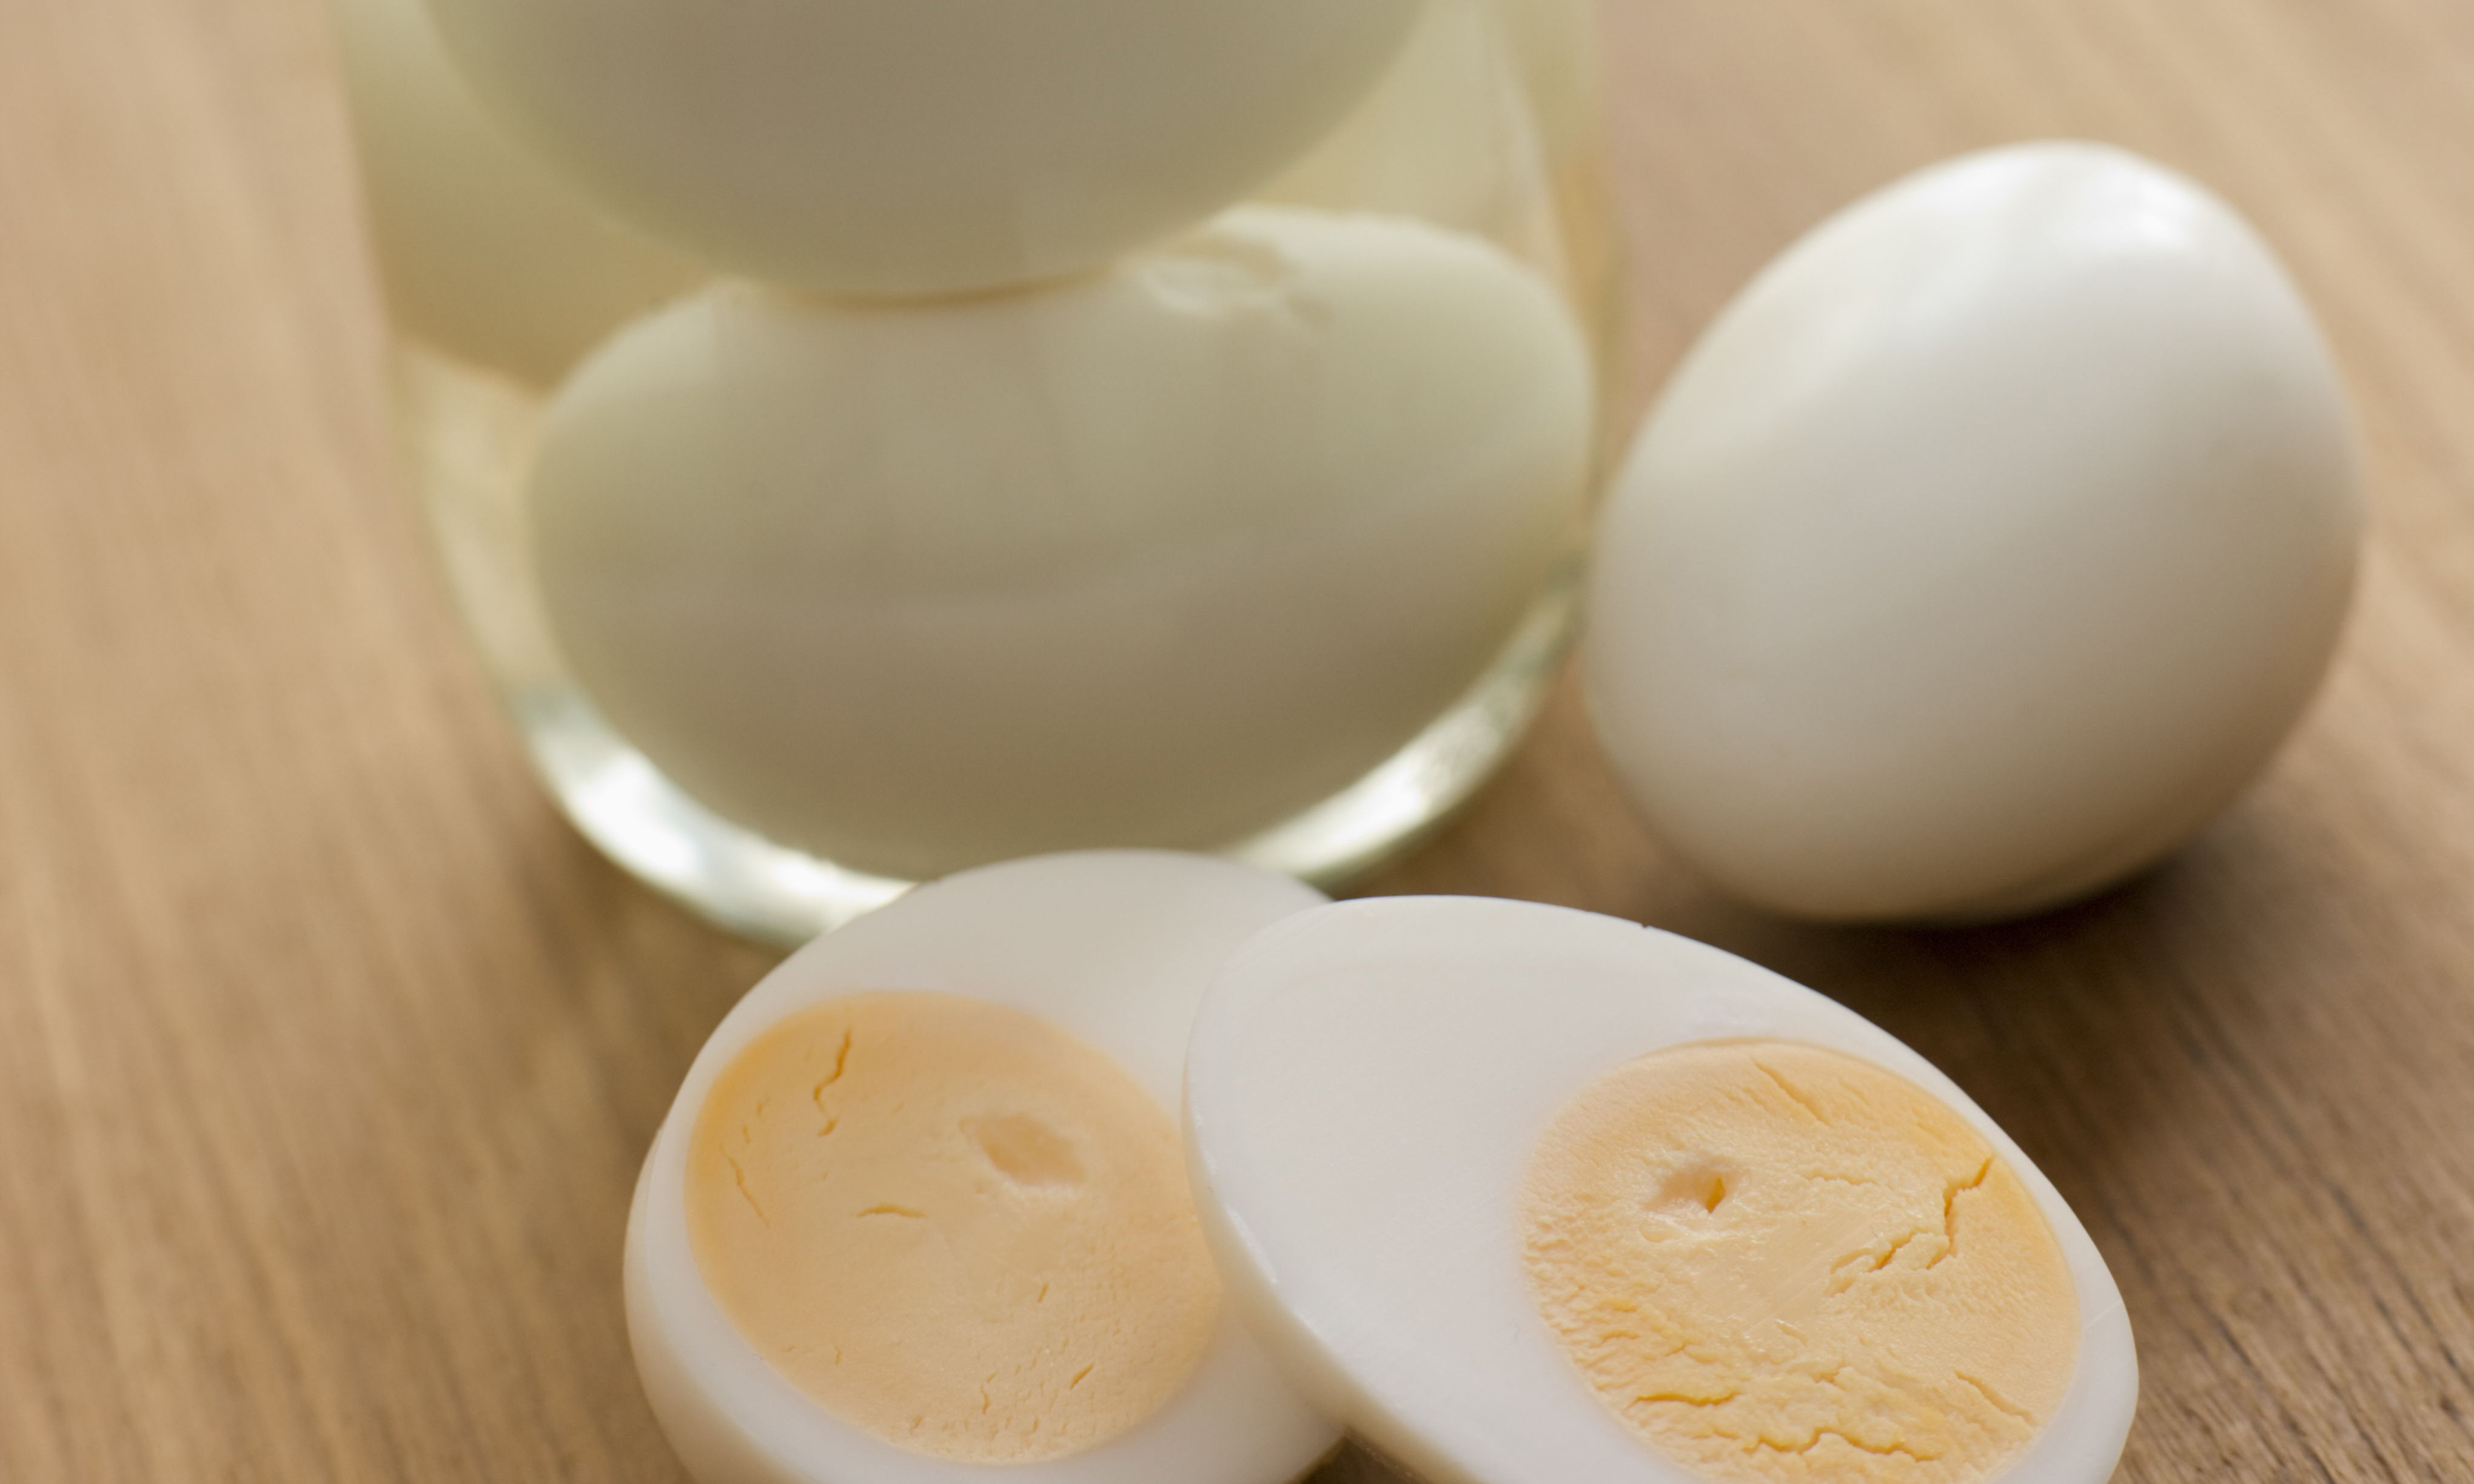 Judges were impressed with Purely Pickled Eggs Ltd's plans to identify novel ways of packaging pickled eggs. Photo: Monkey Business Images/REX/Shutterstock